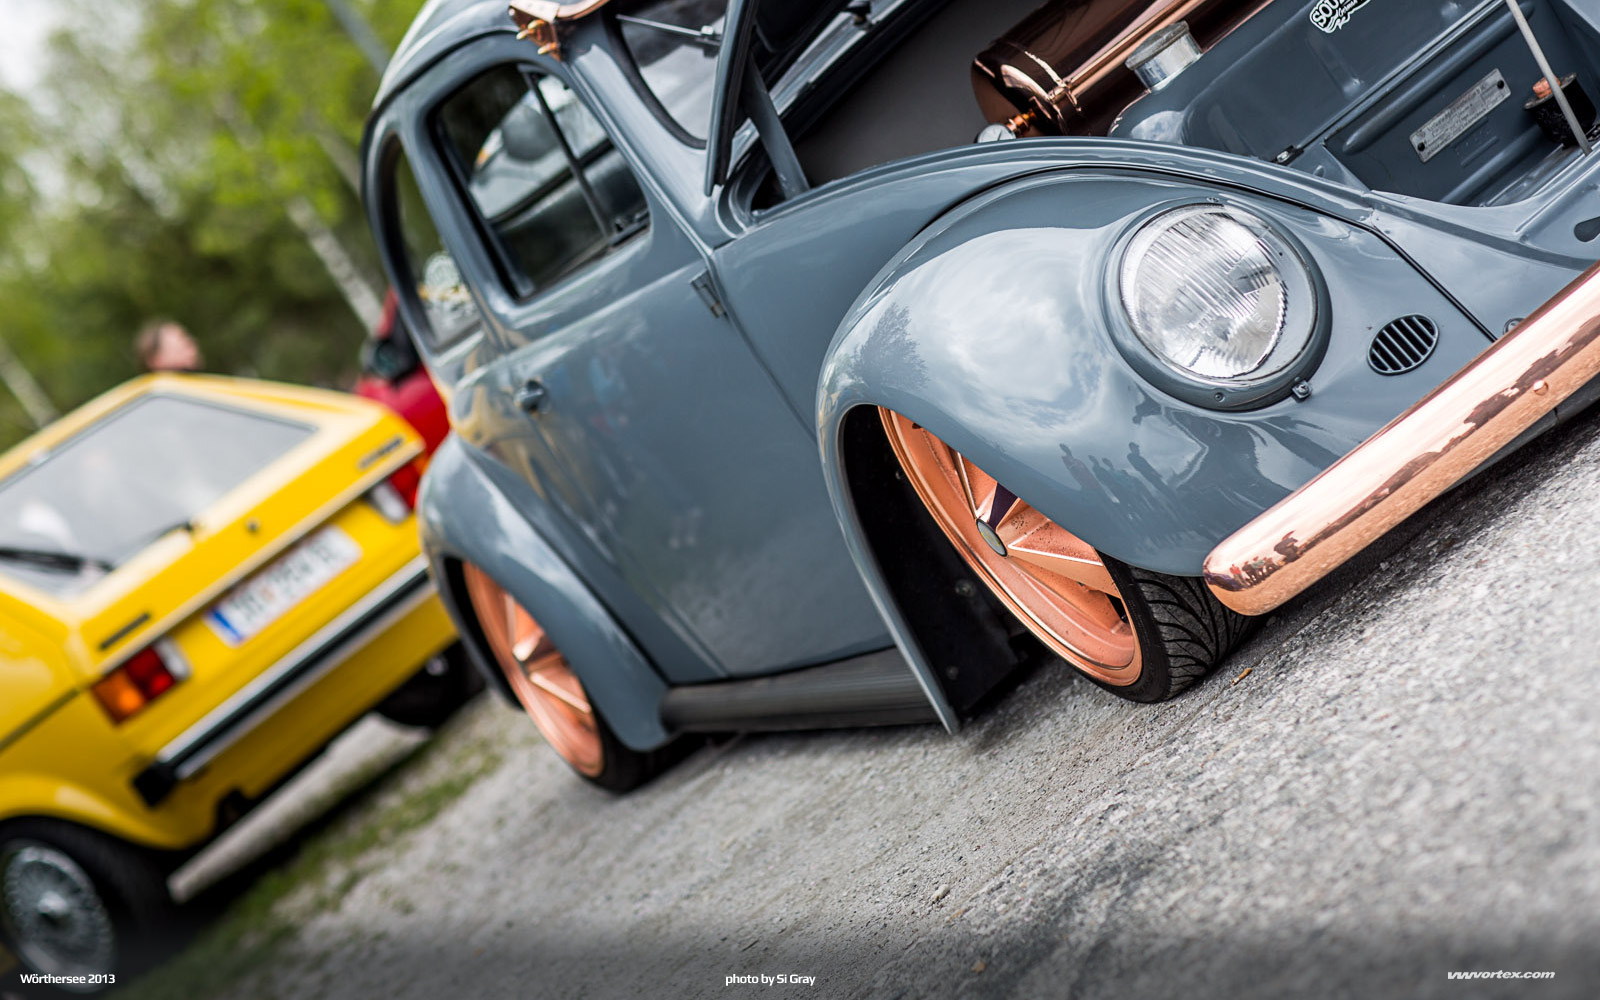 worthersee-2013-gallery-si-gray-088